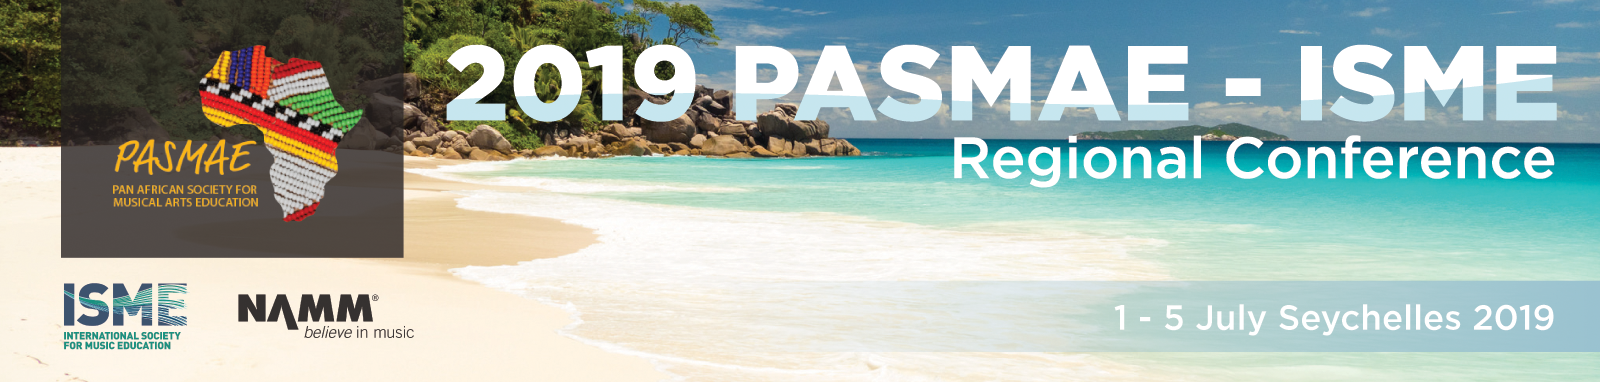 Invitation to attend PASMAE in the Seychelles